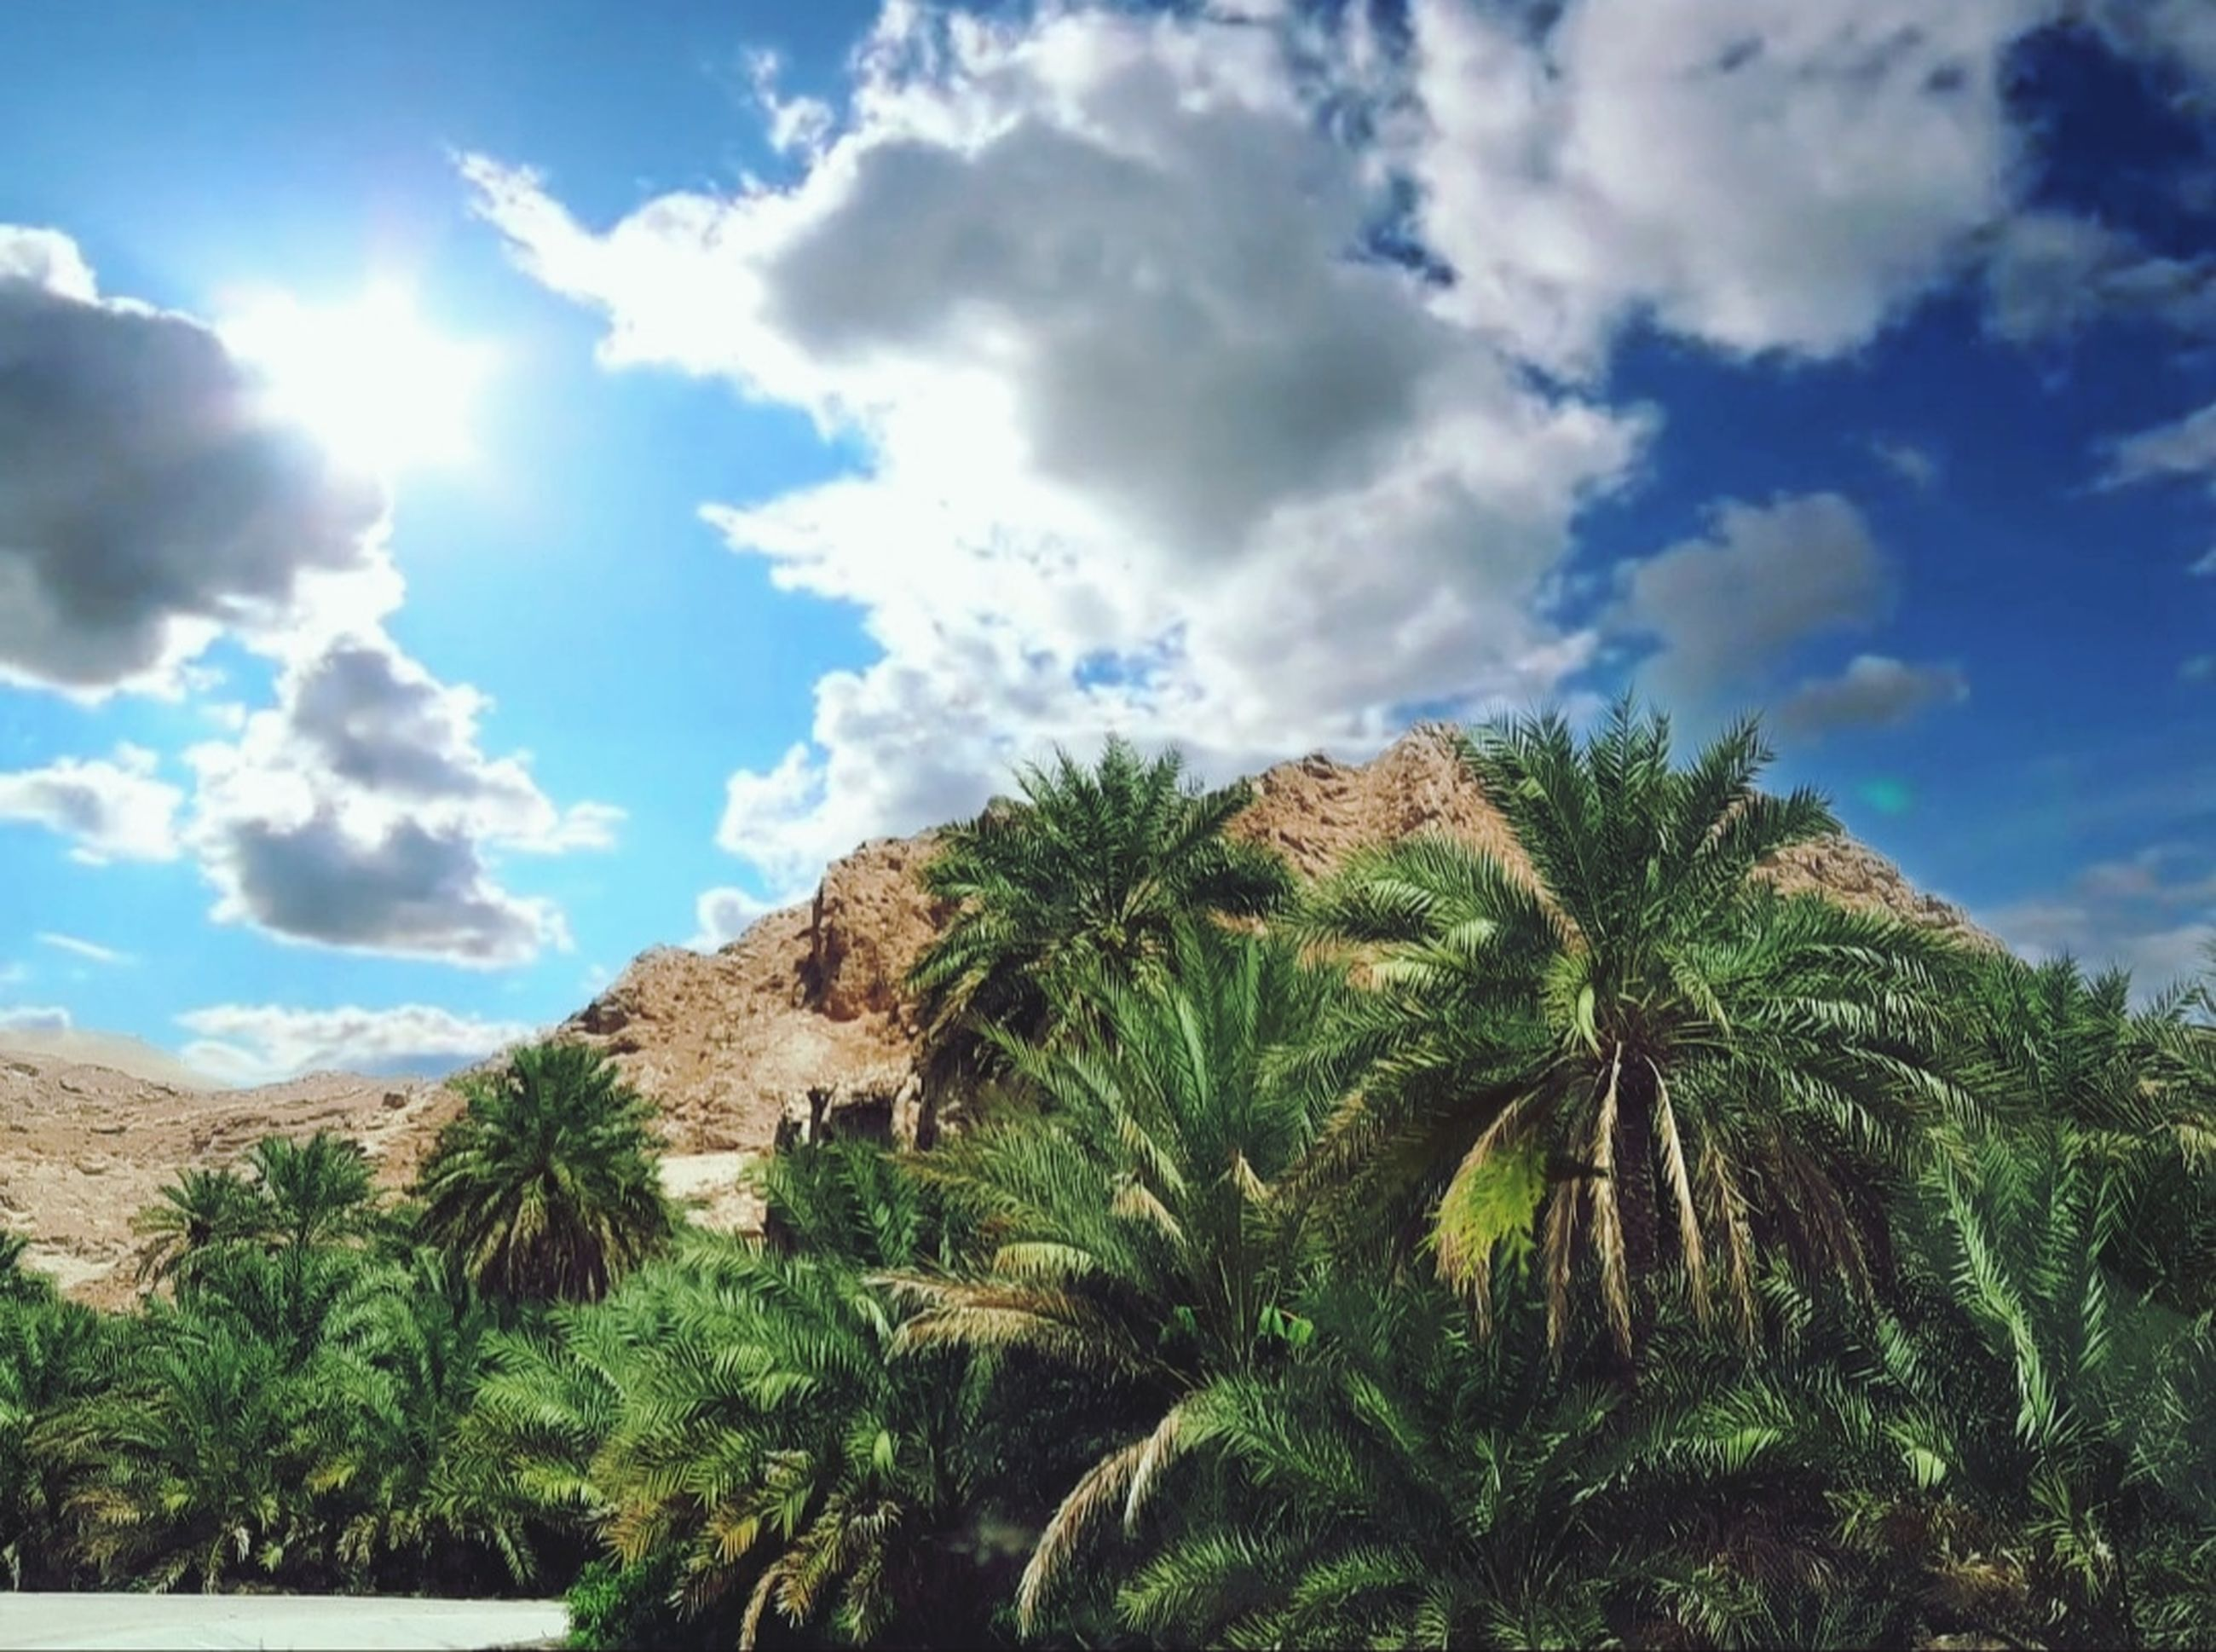 sky, plant, cloud, palm tree, tree, tropical climate, nature, beauty in nature, scenics - nature, environment, landscape, land, tropics, no people, sea, travel destinations, growth, mountain, day, outdoors, travel, tranquility, blue, sunlight, vacation, green, tranquil scene, coast, tourism, non-urban scene, date palm tree